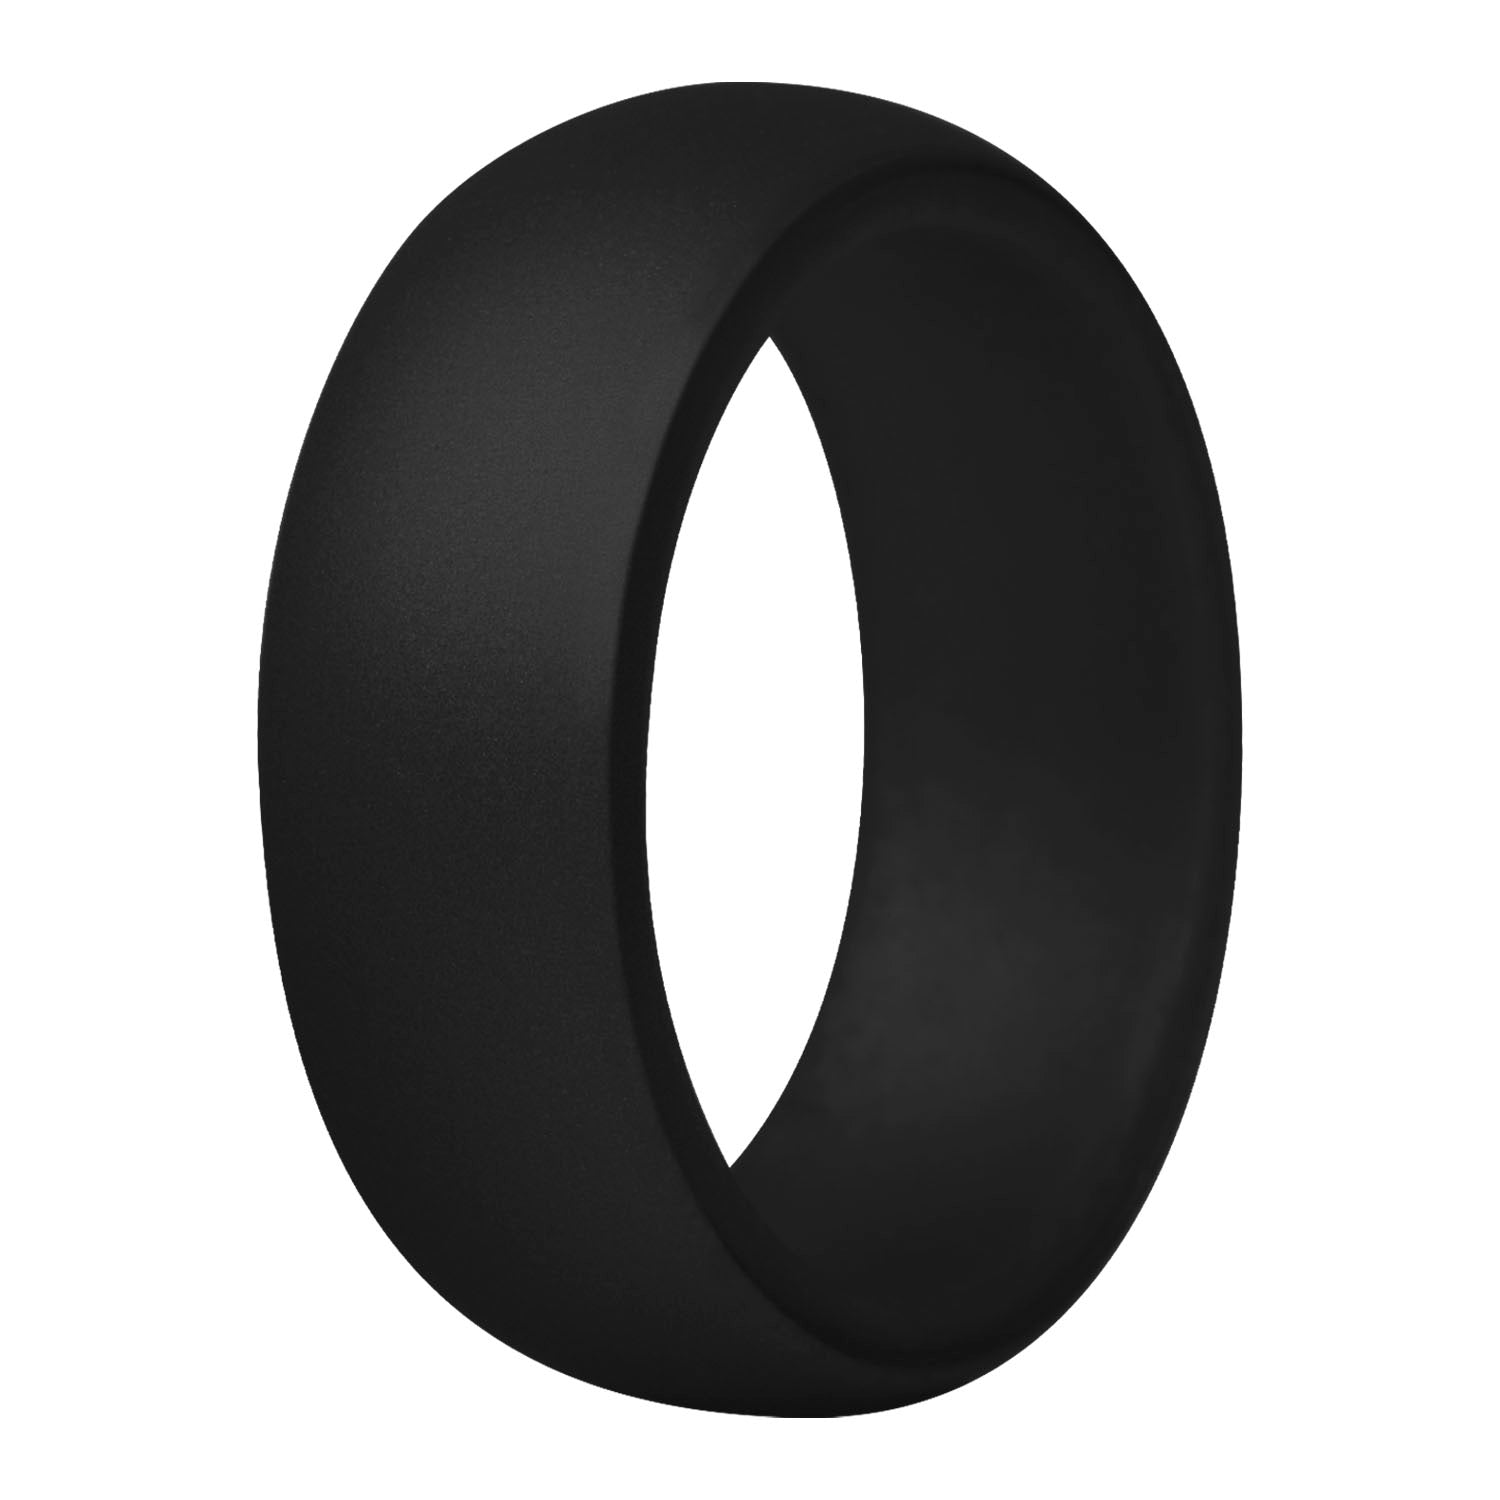 Men's Round Silicone Ring - Black